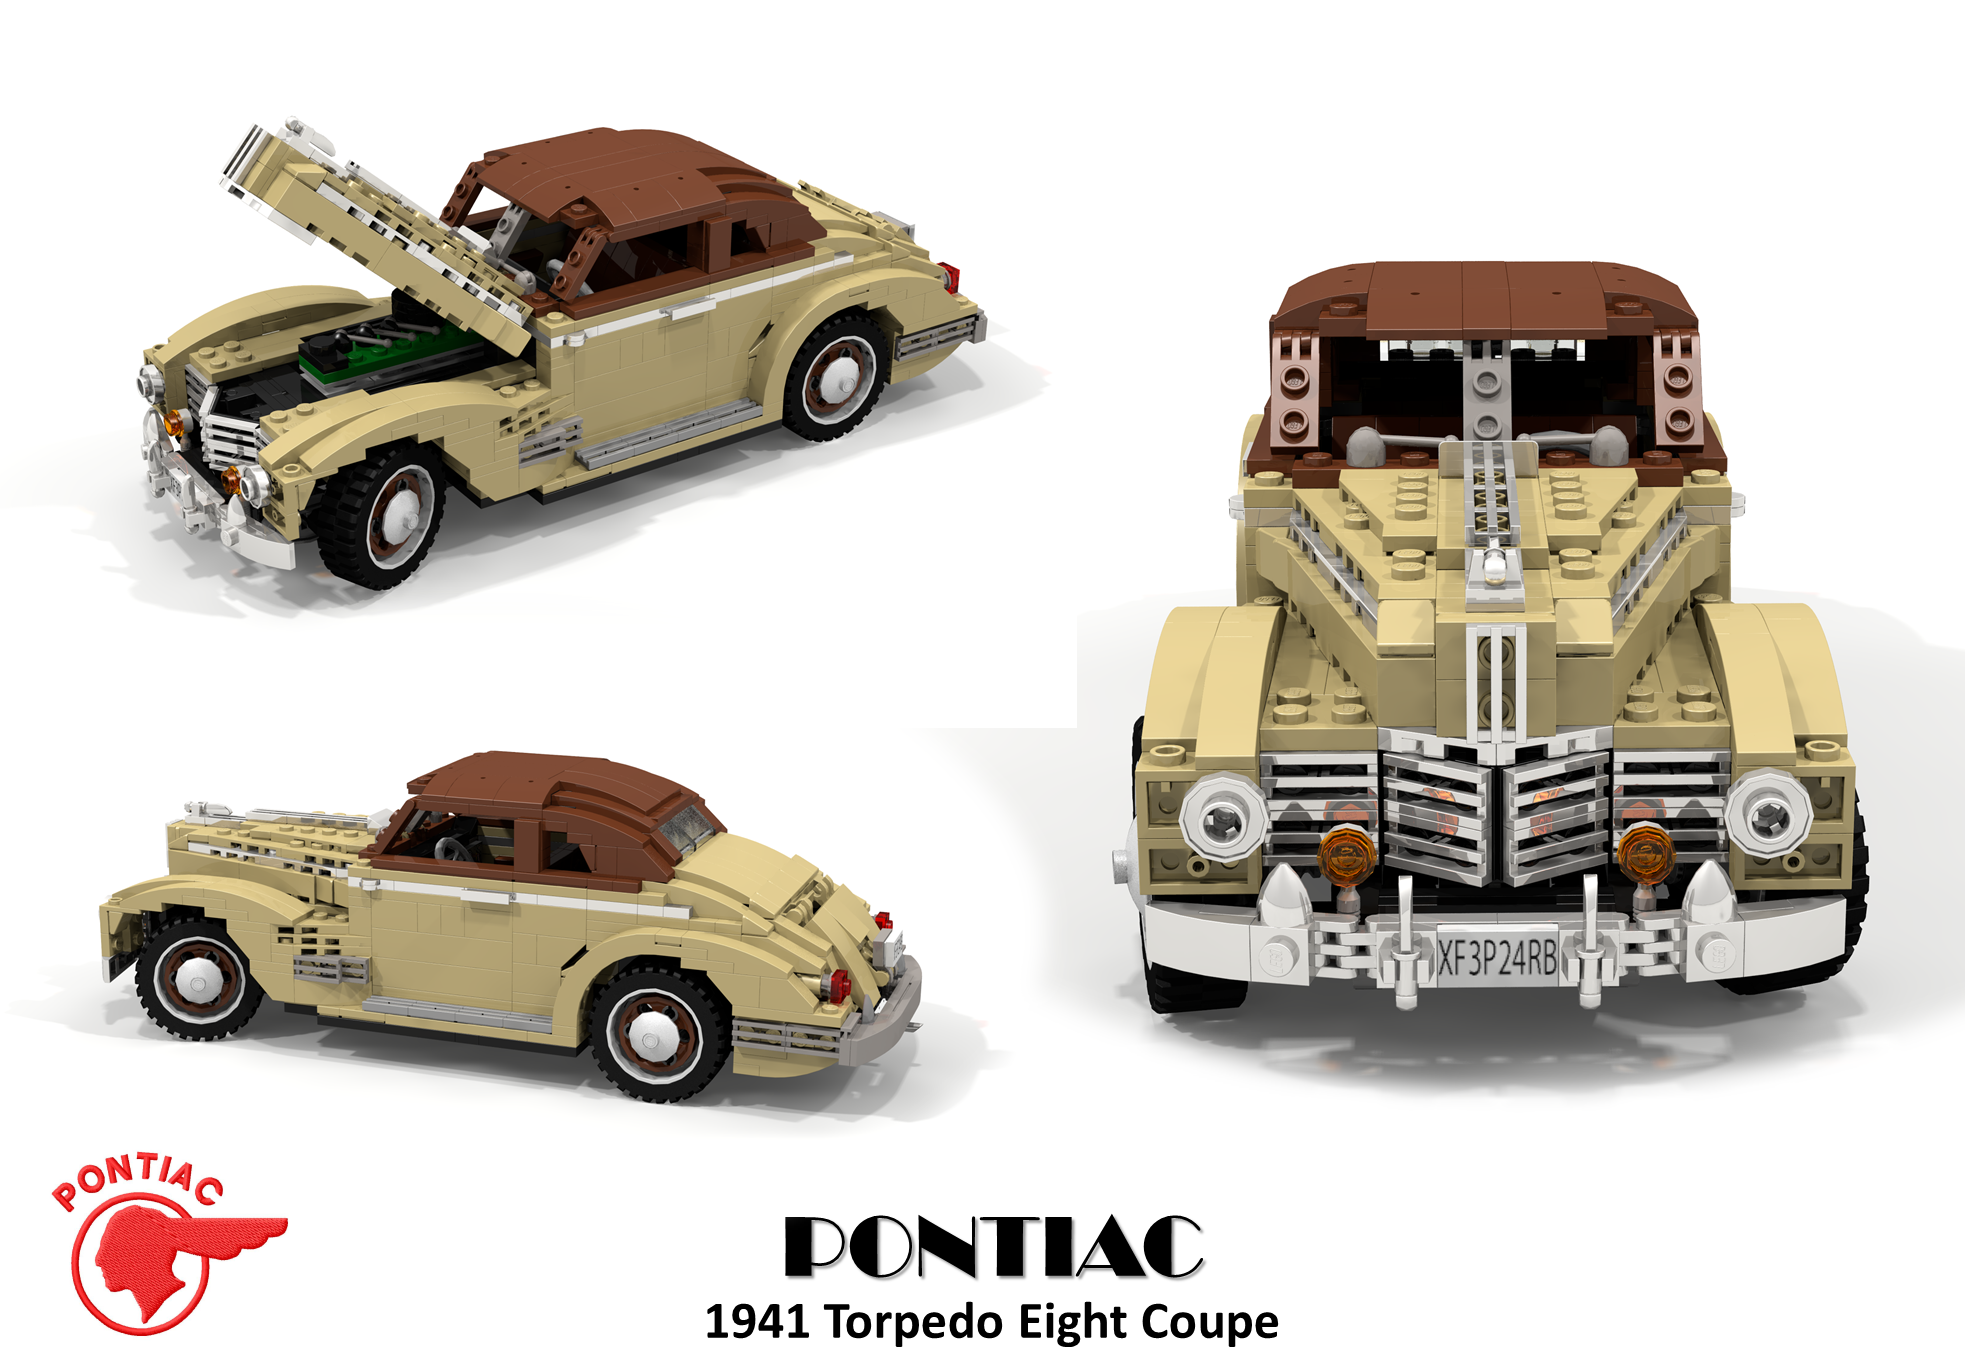 pontiac_1941_torpedo_eight_coupe_10.png